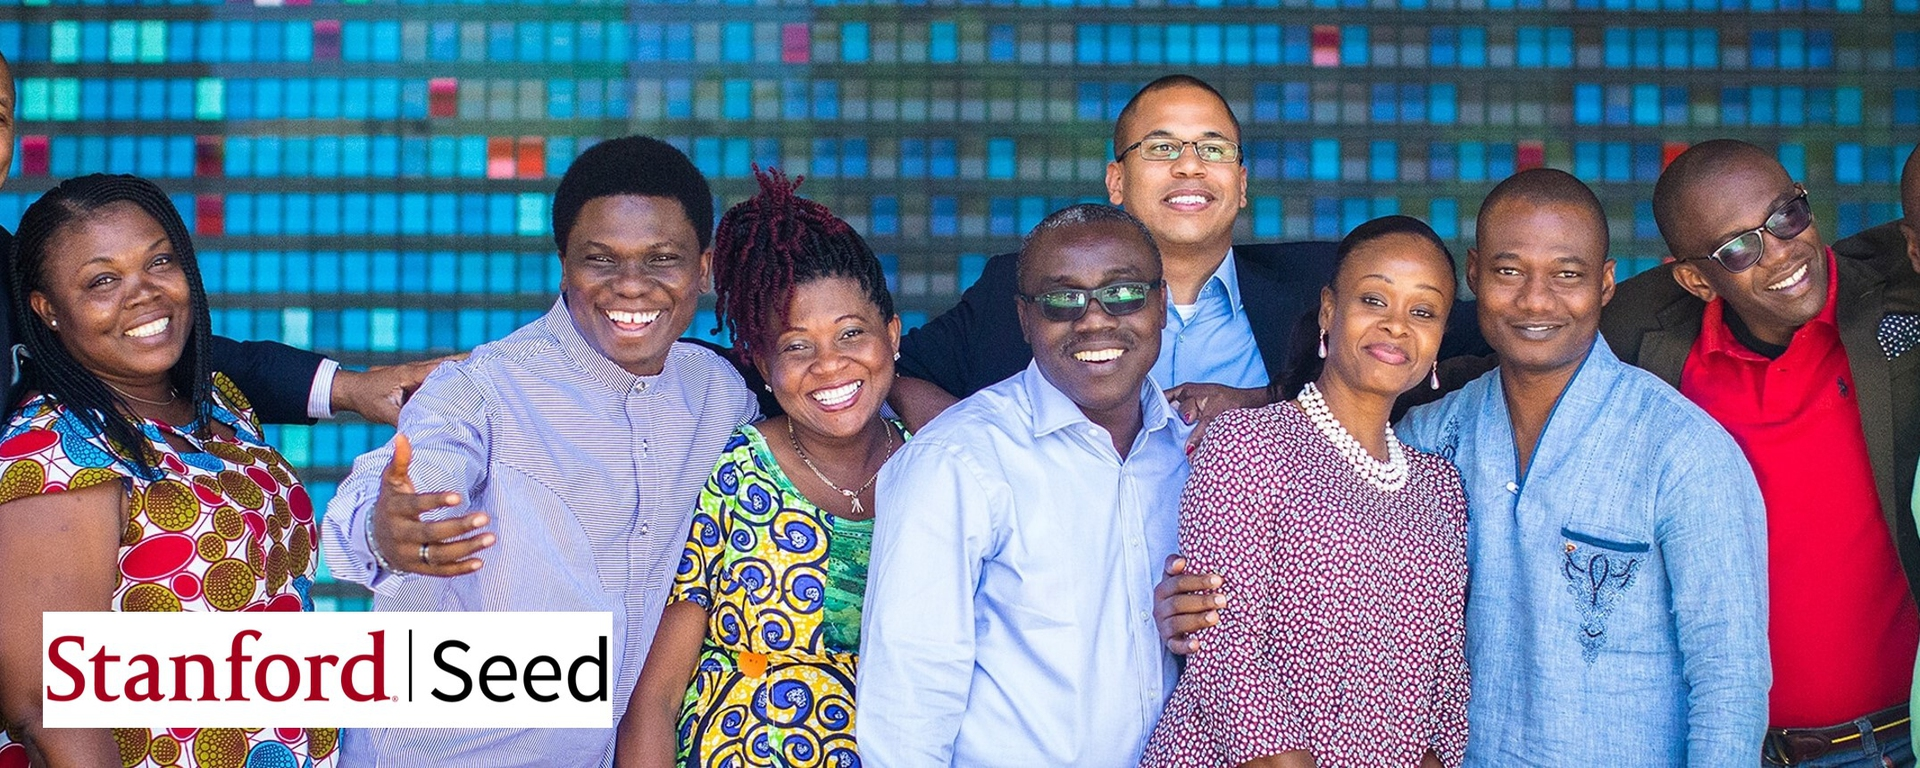 Stanford Institute for Innovation in Developing Economies (Stanford Seed) - Team Lead Movemeback African opportunity cover image